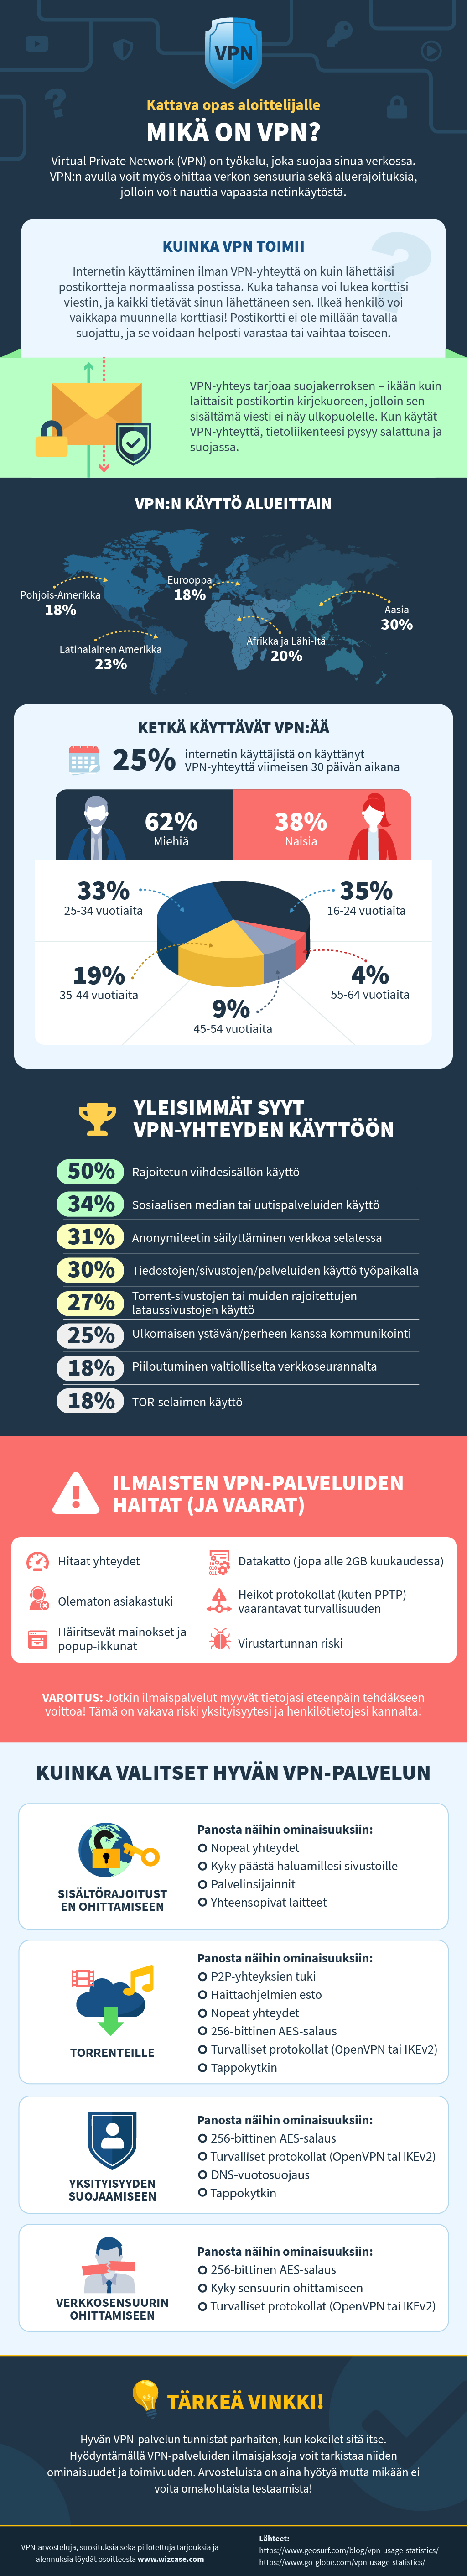 infographic guide to what is a VPN in Finnish